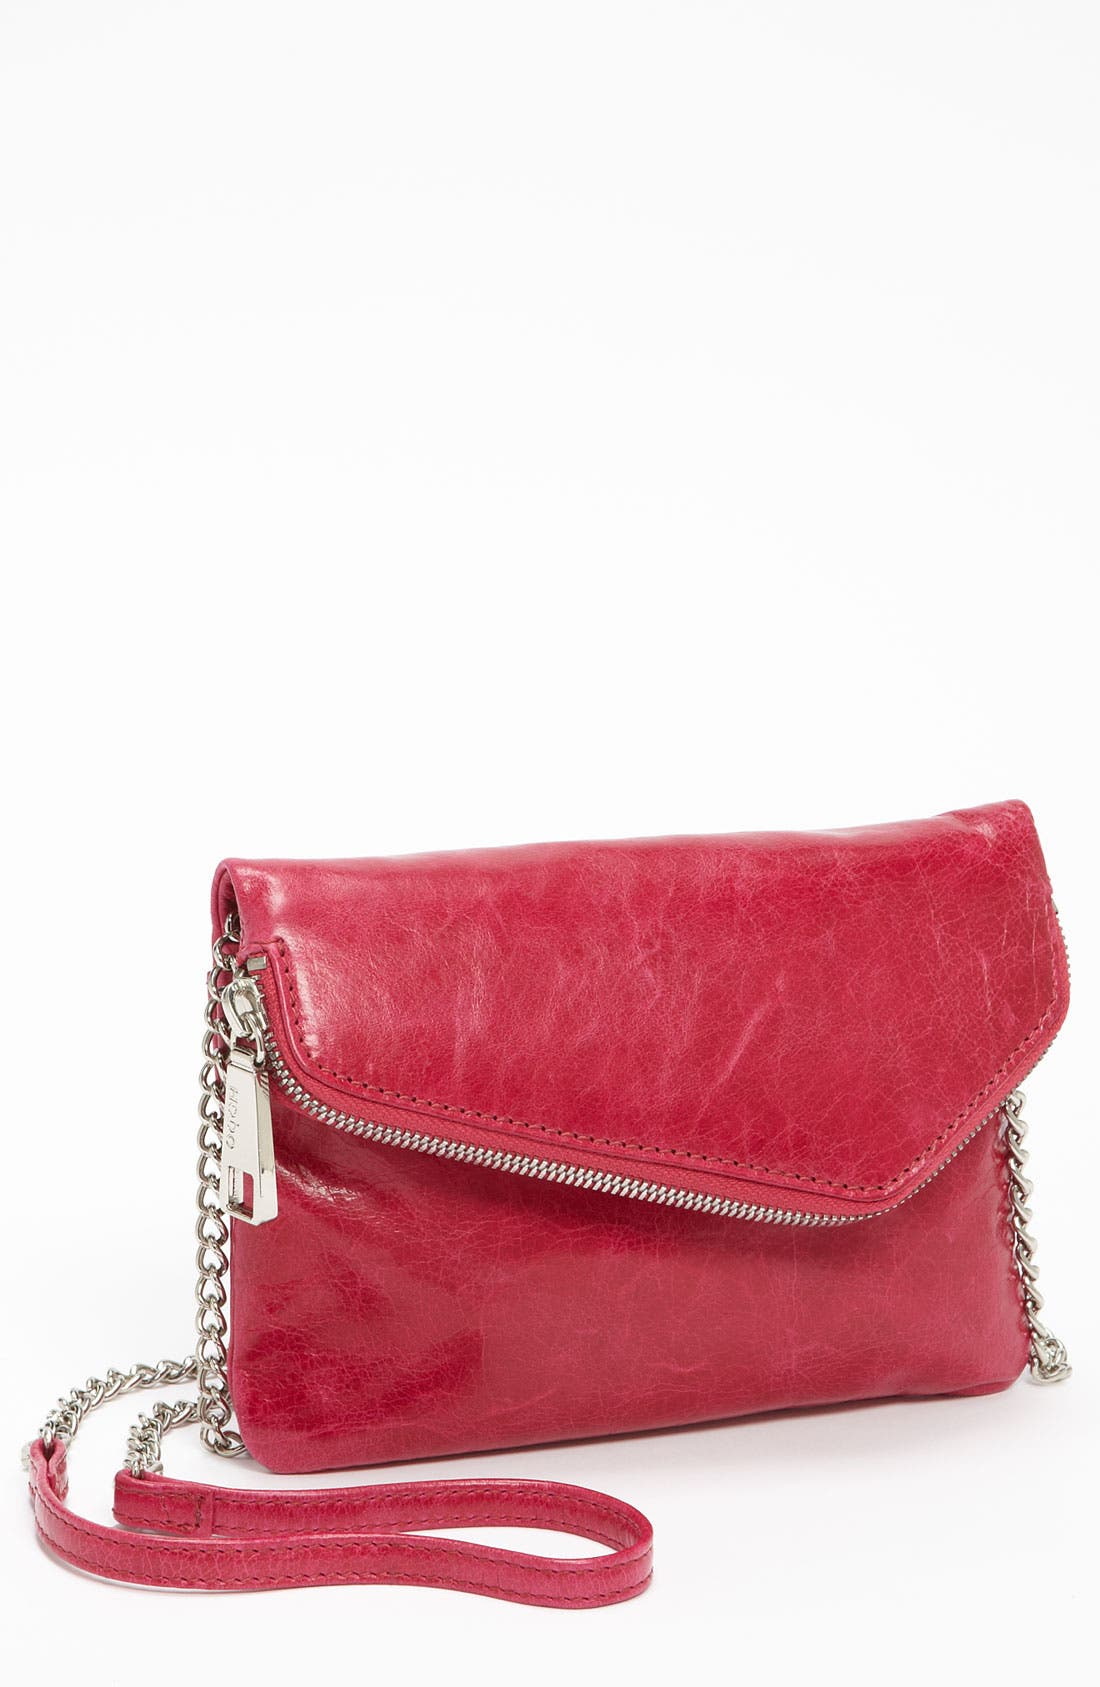 HOBO 'Daria' Leather Crossbody Bag